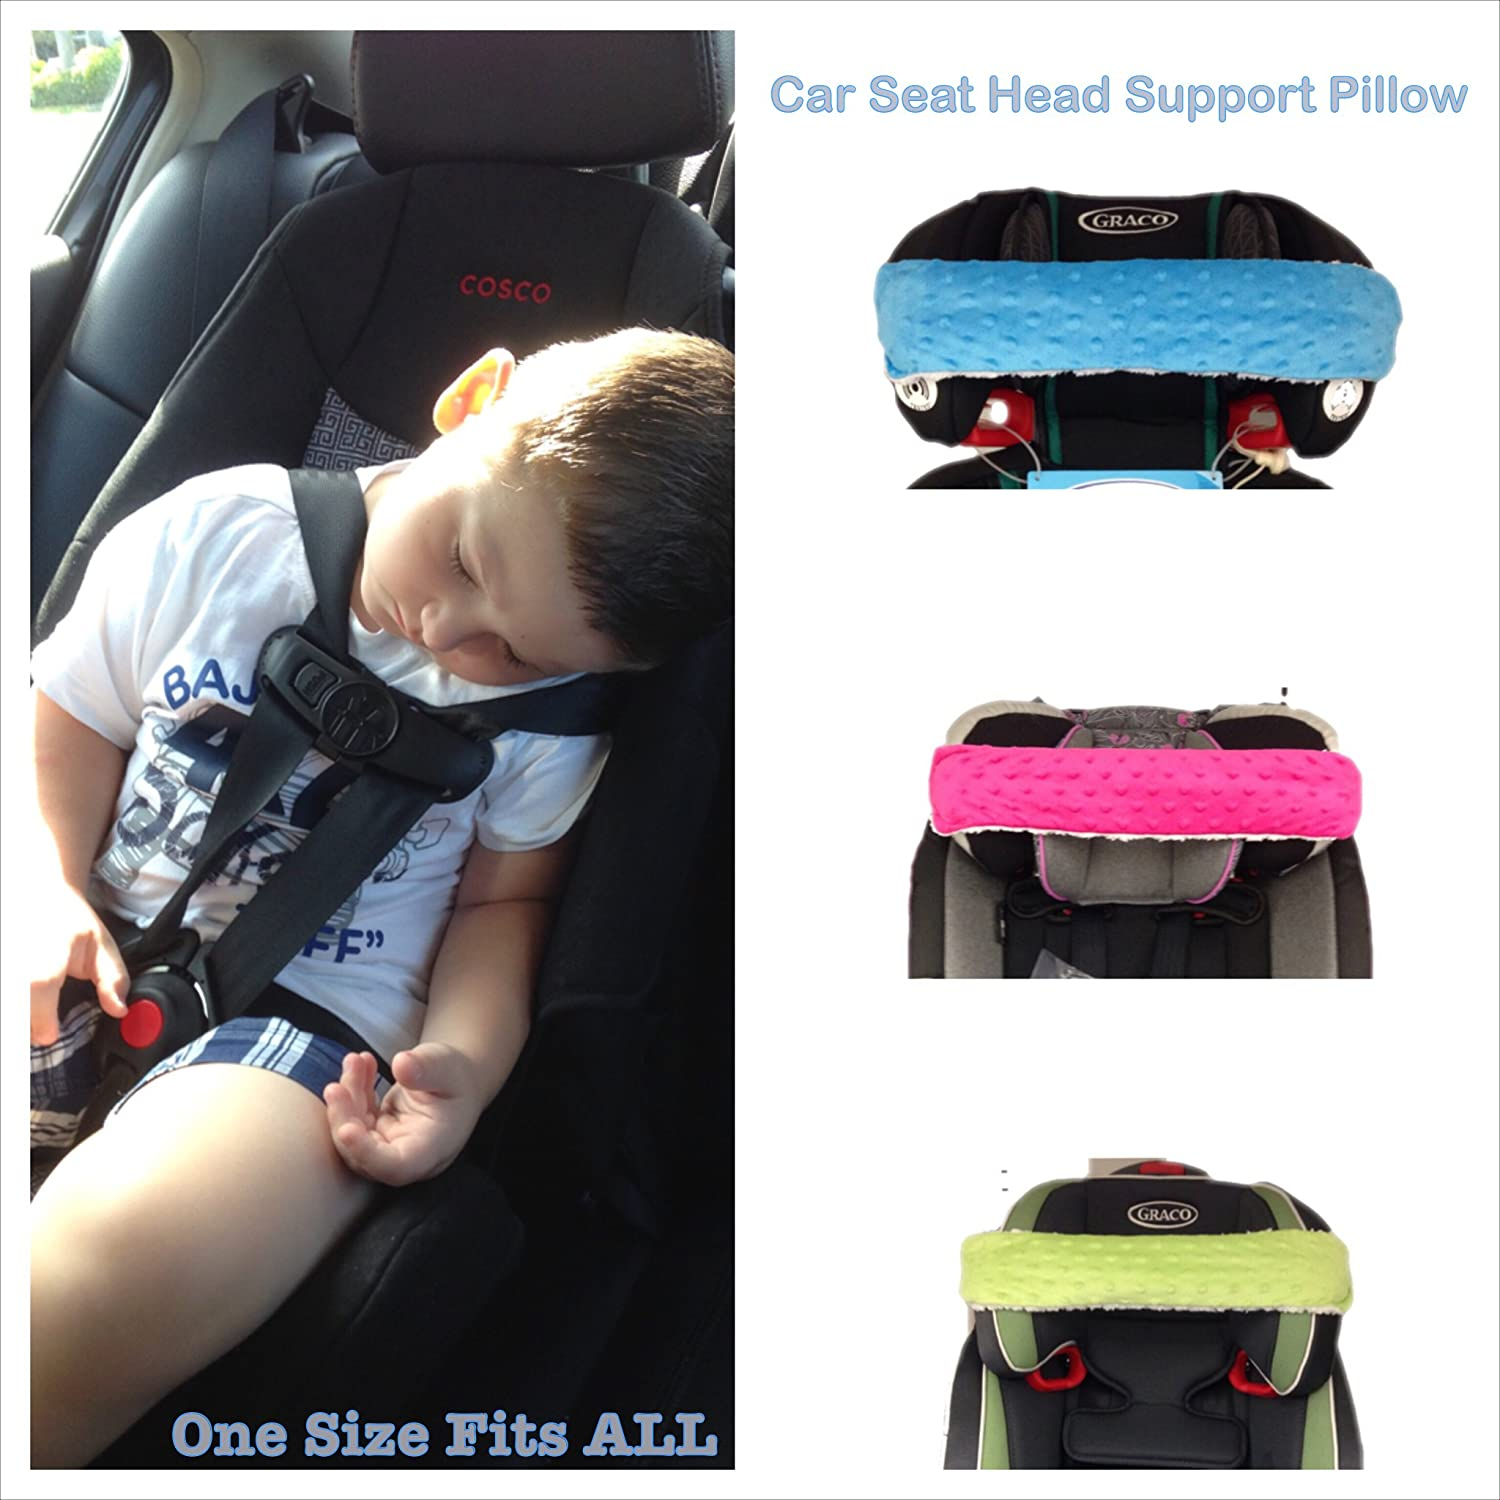 Nonods Car Seat Head Support Pillow Works Awesome! (Blue/white)